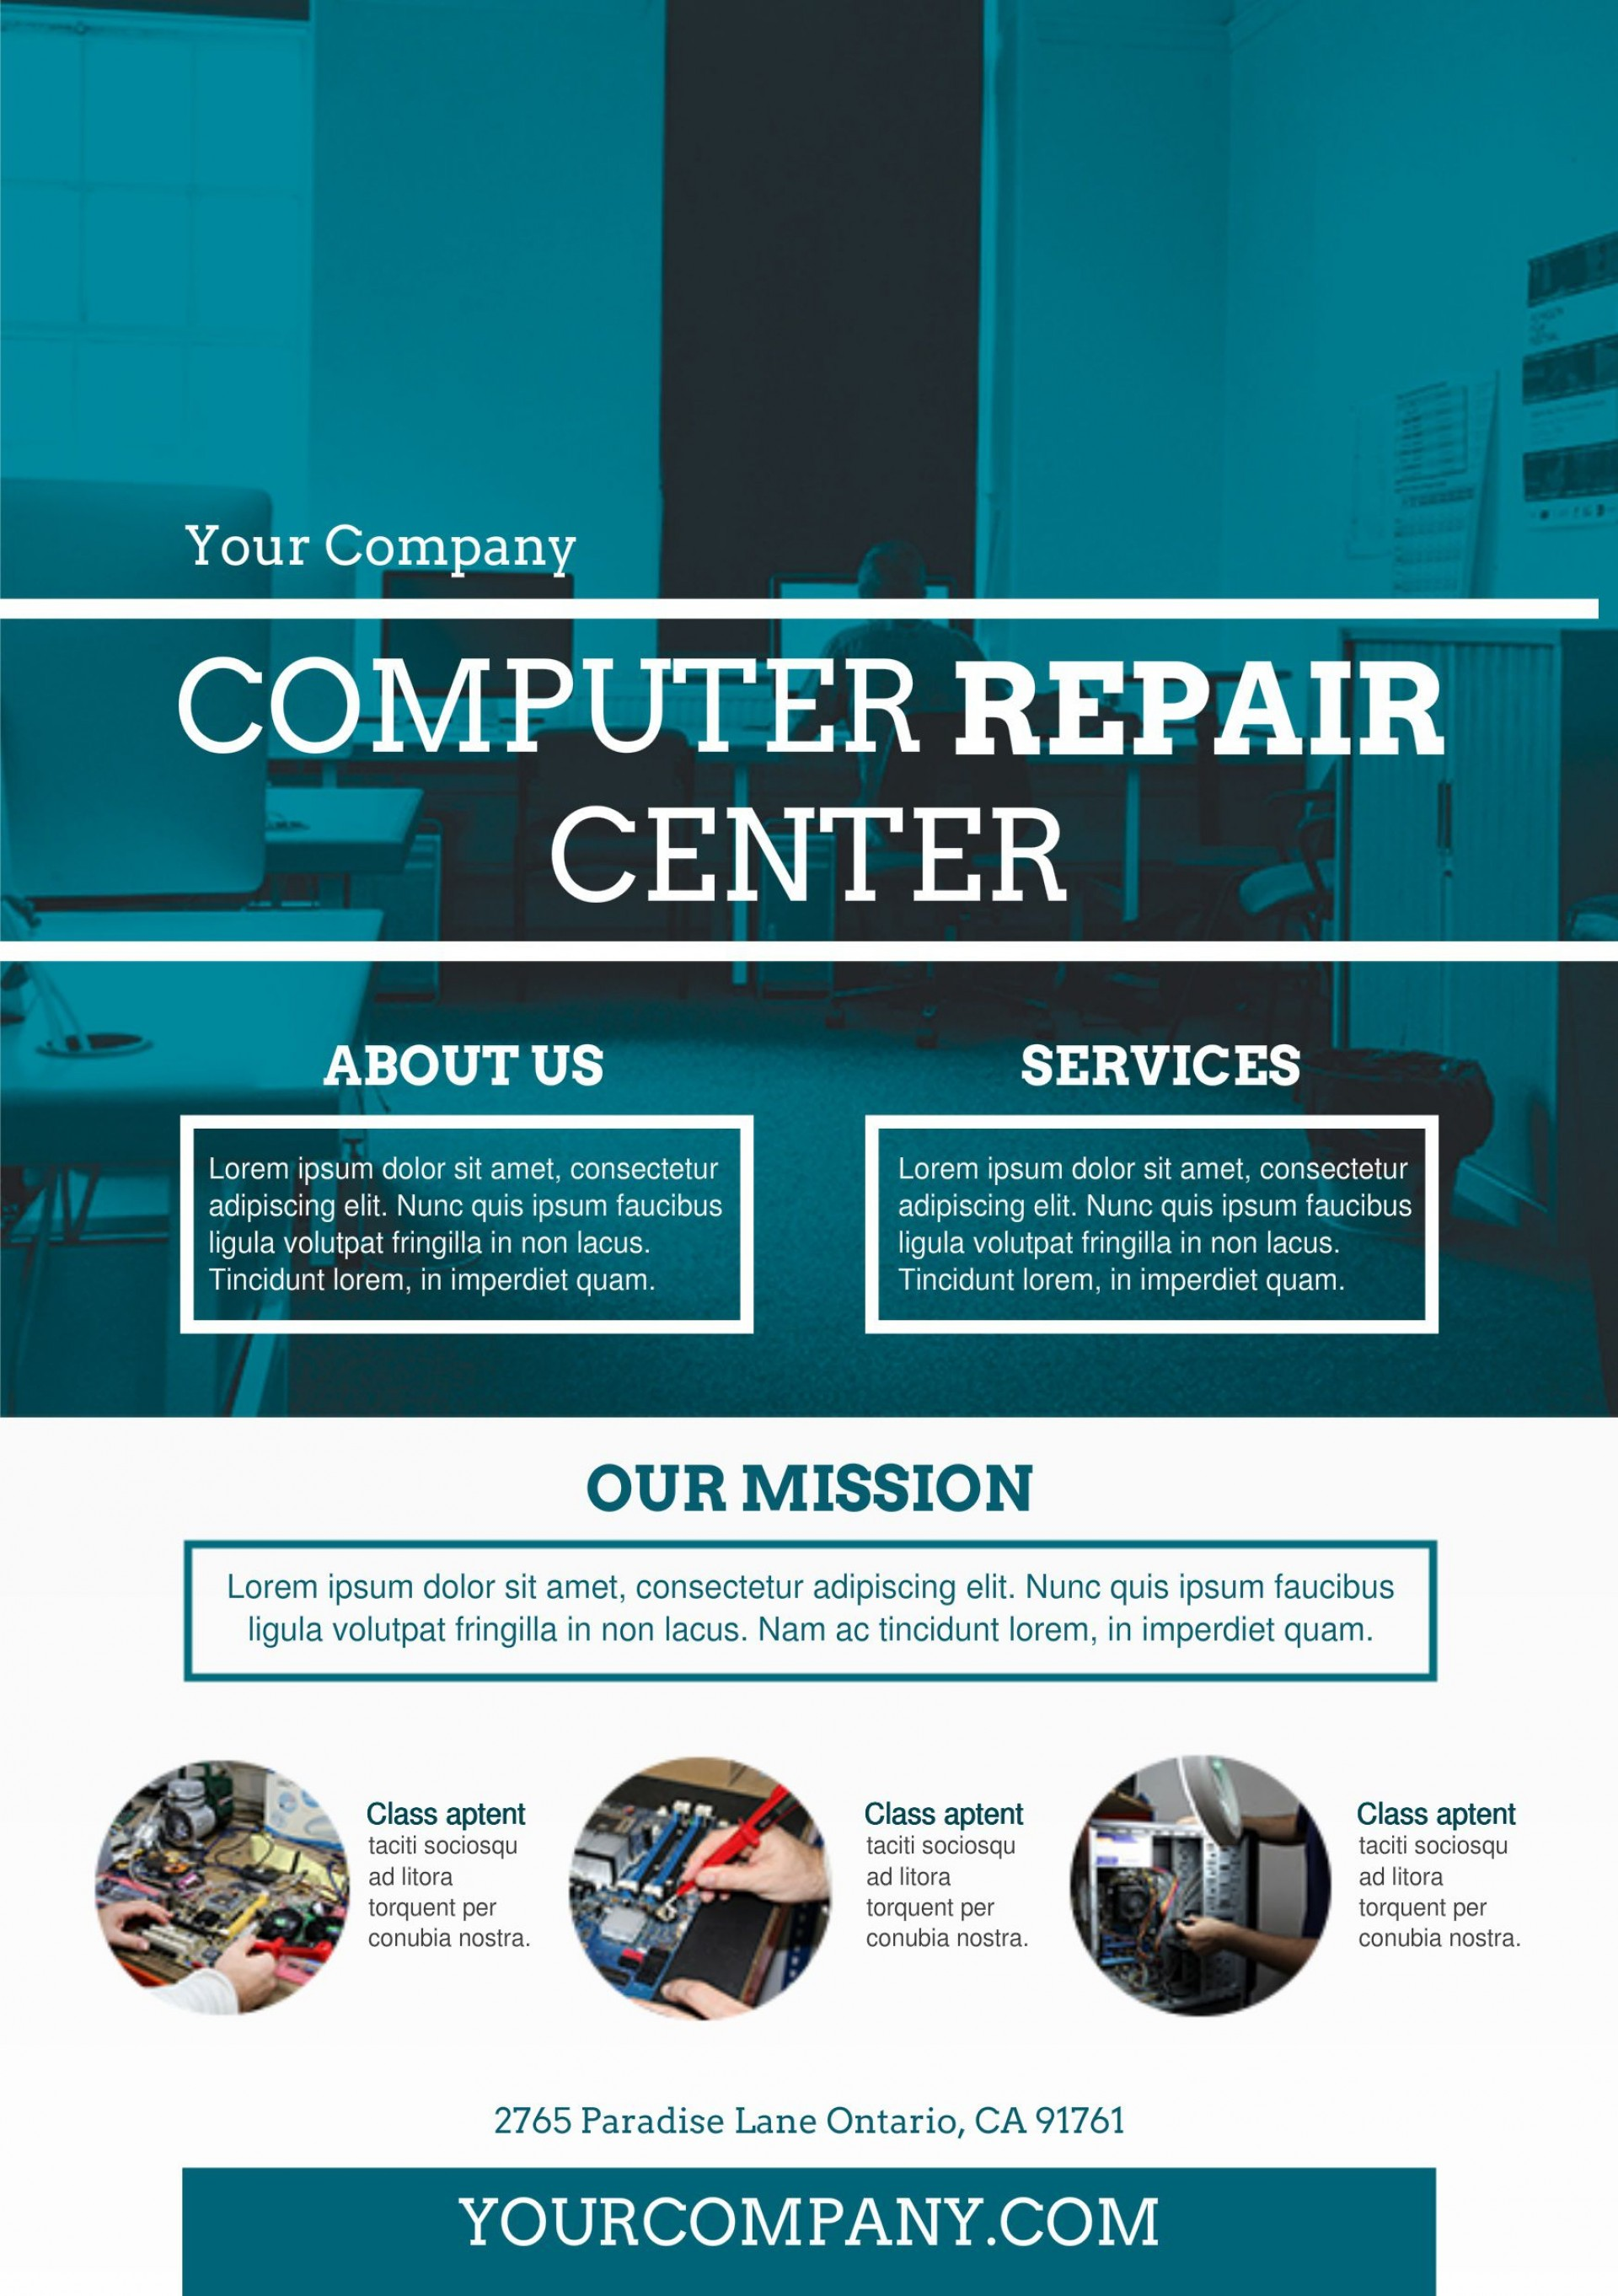 002 Awful Computer Repair Flyer Template High Resolution  Word Busines Free1920